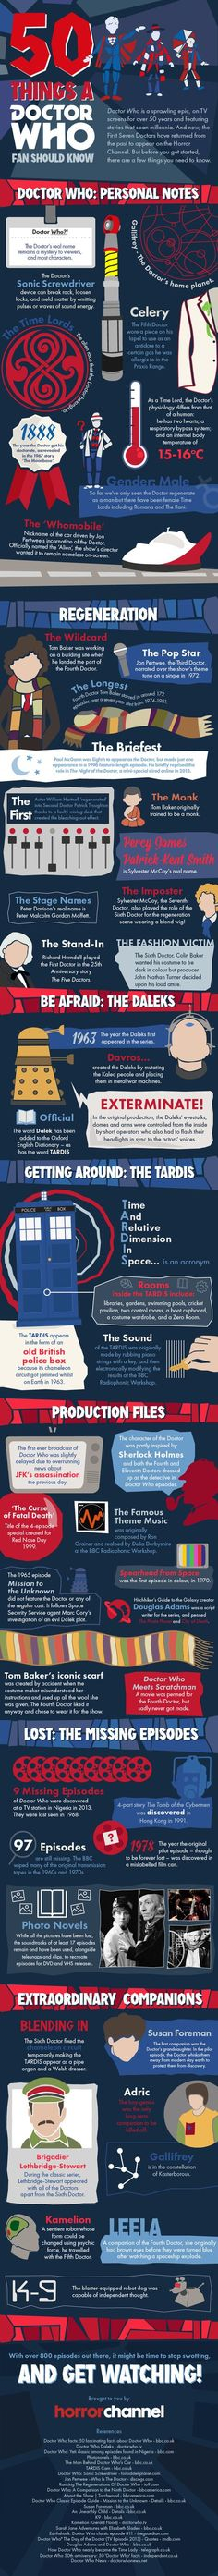 50 things a Doctor Who Fan Should Know #infographic #TelevisionSeries #DoctorWho